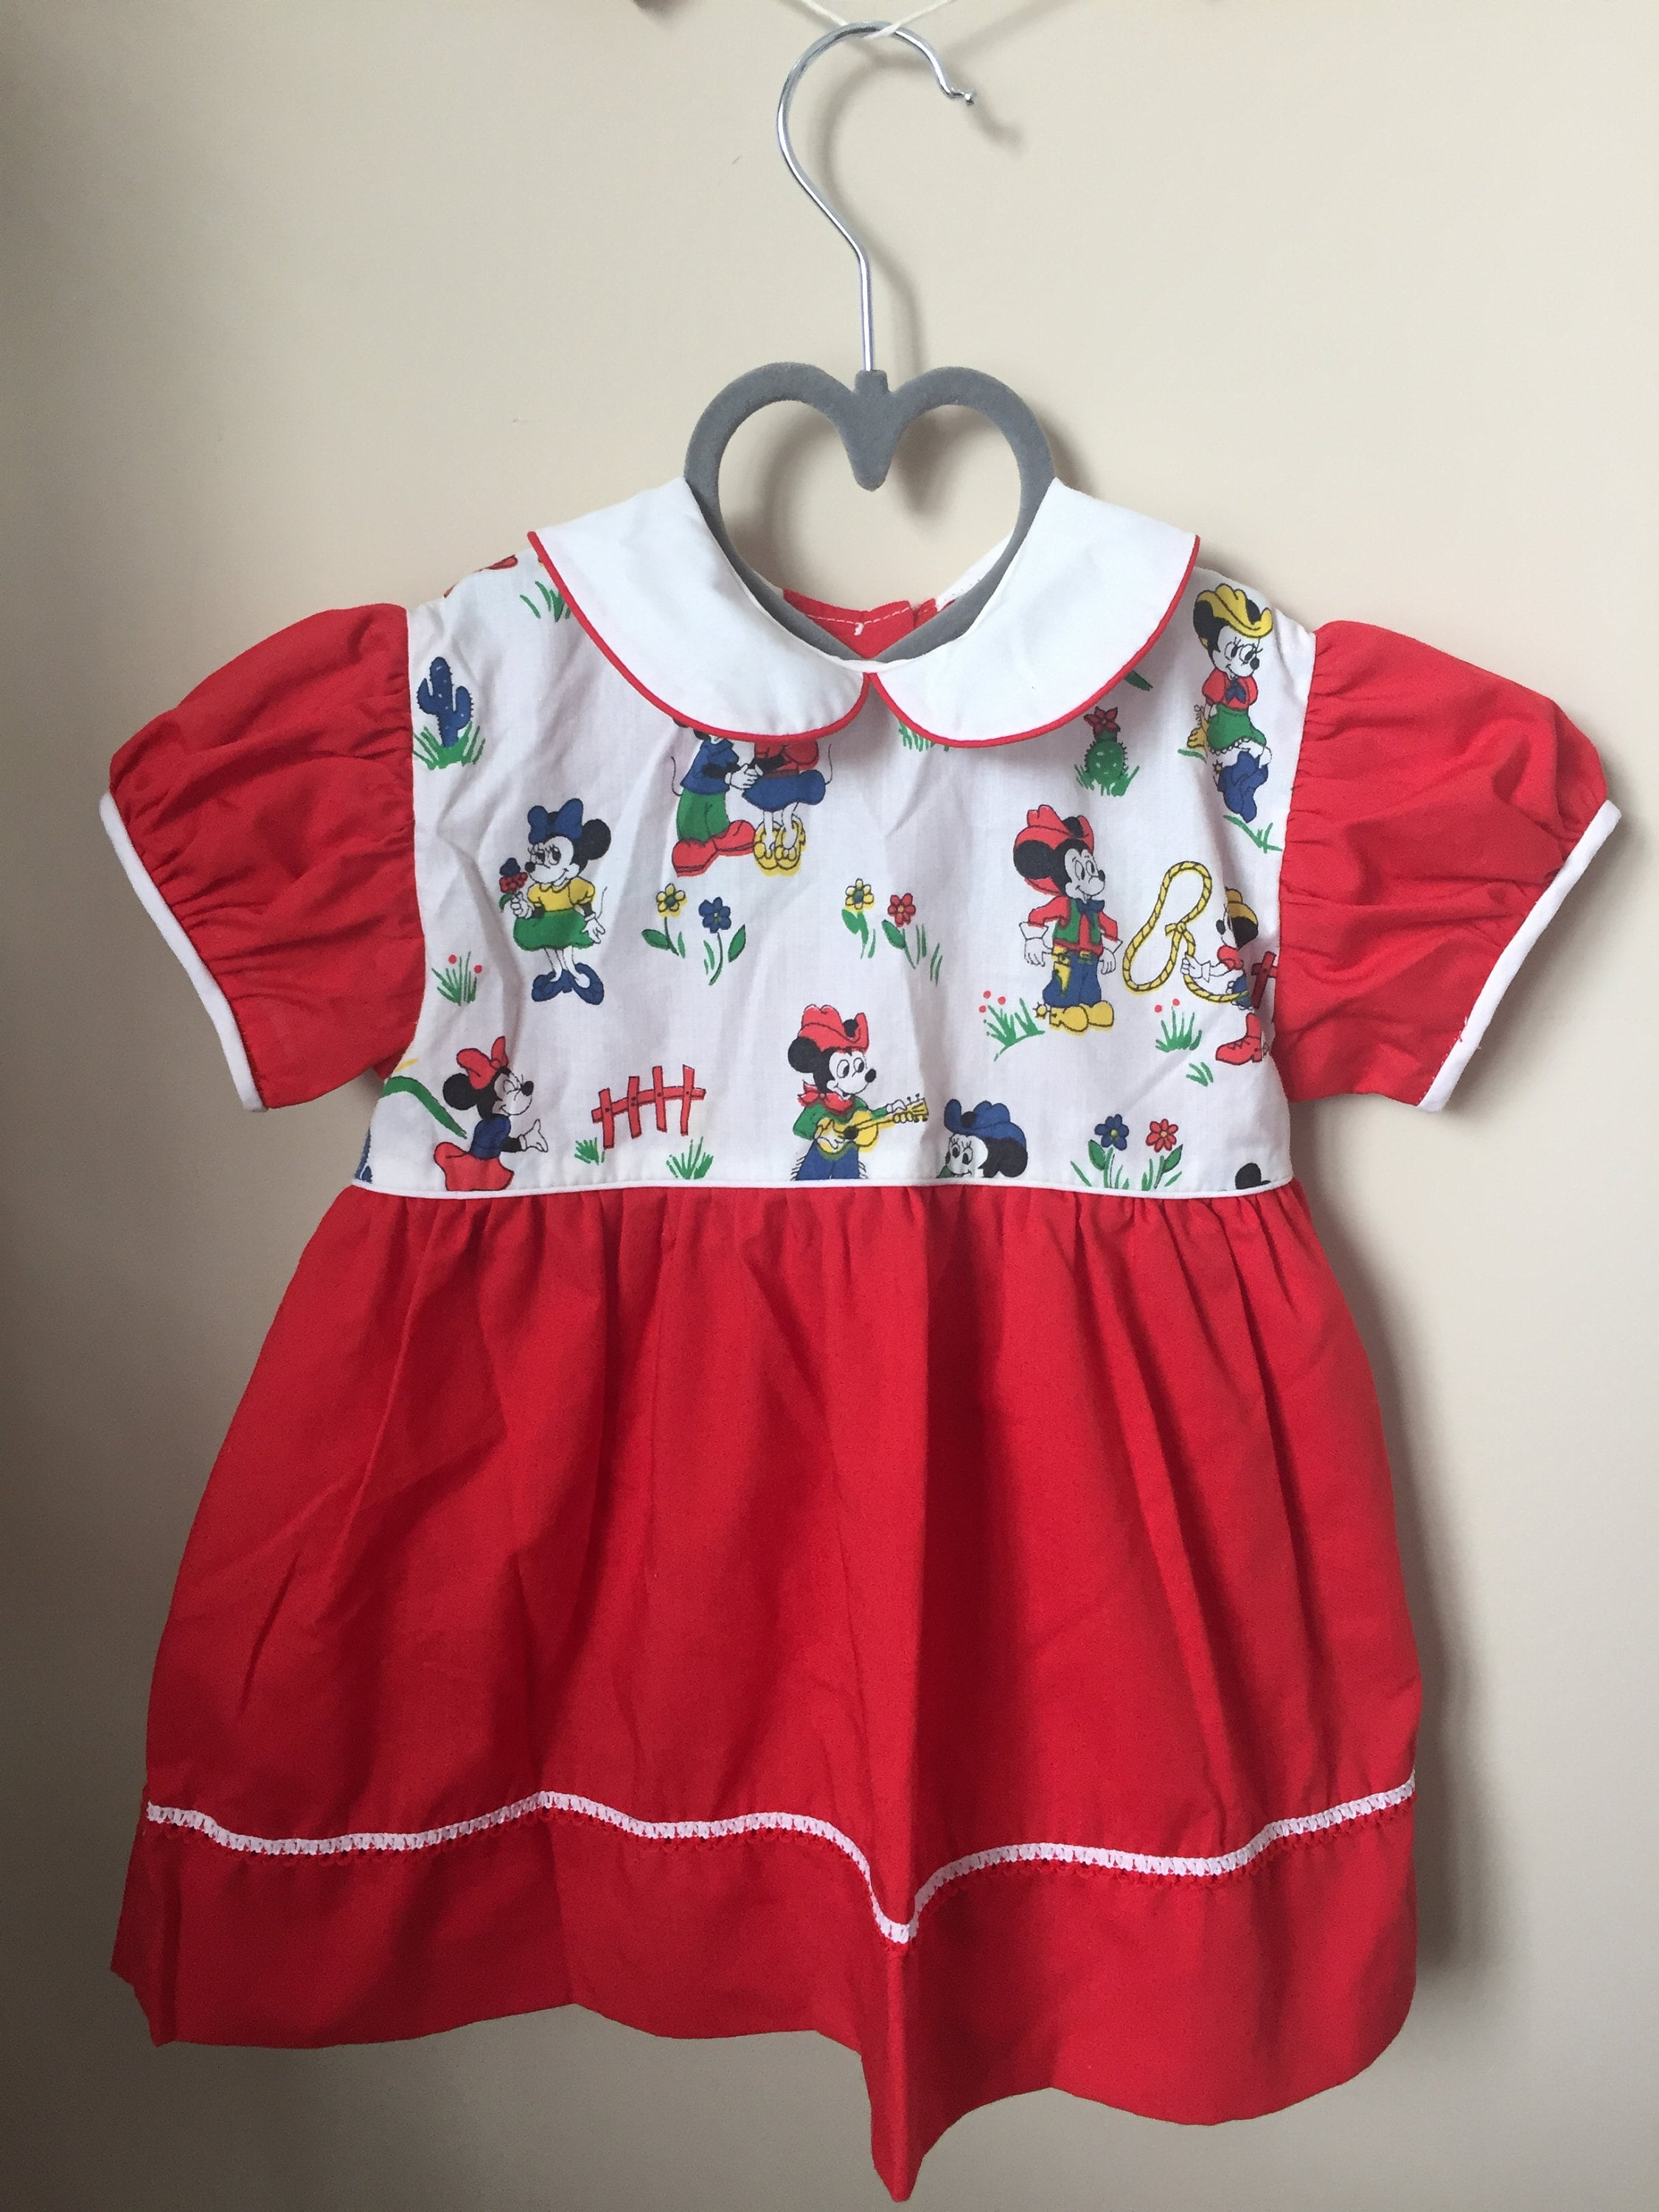 8d2b05aa2 Cutest Ever Vintage Mickey Minnie Mouse Dress for Baby   Etsy